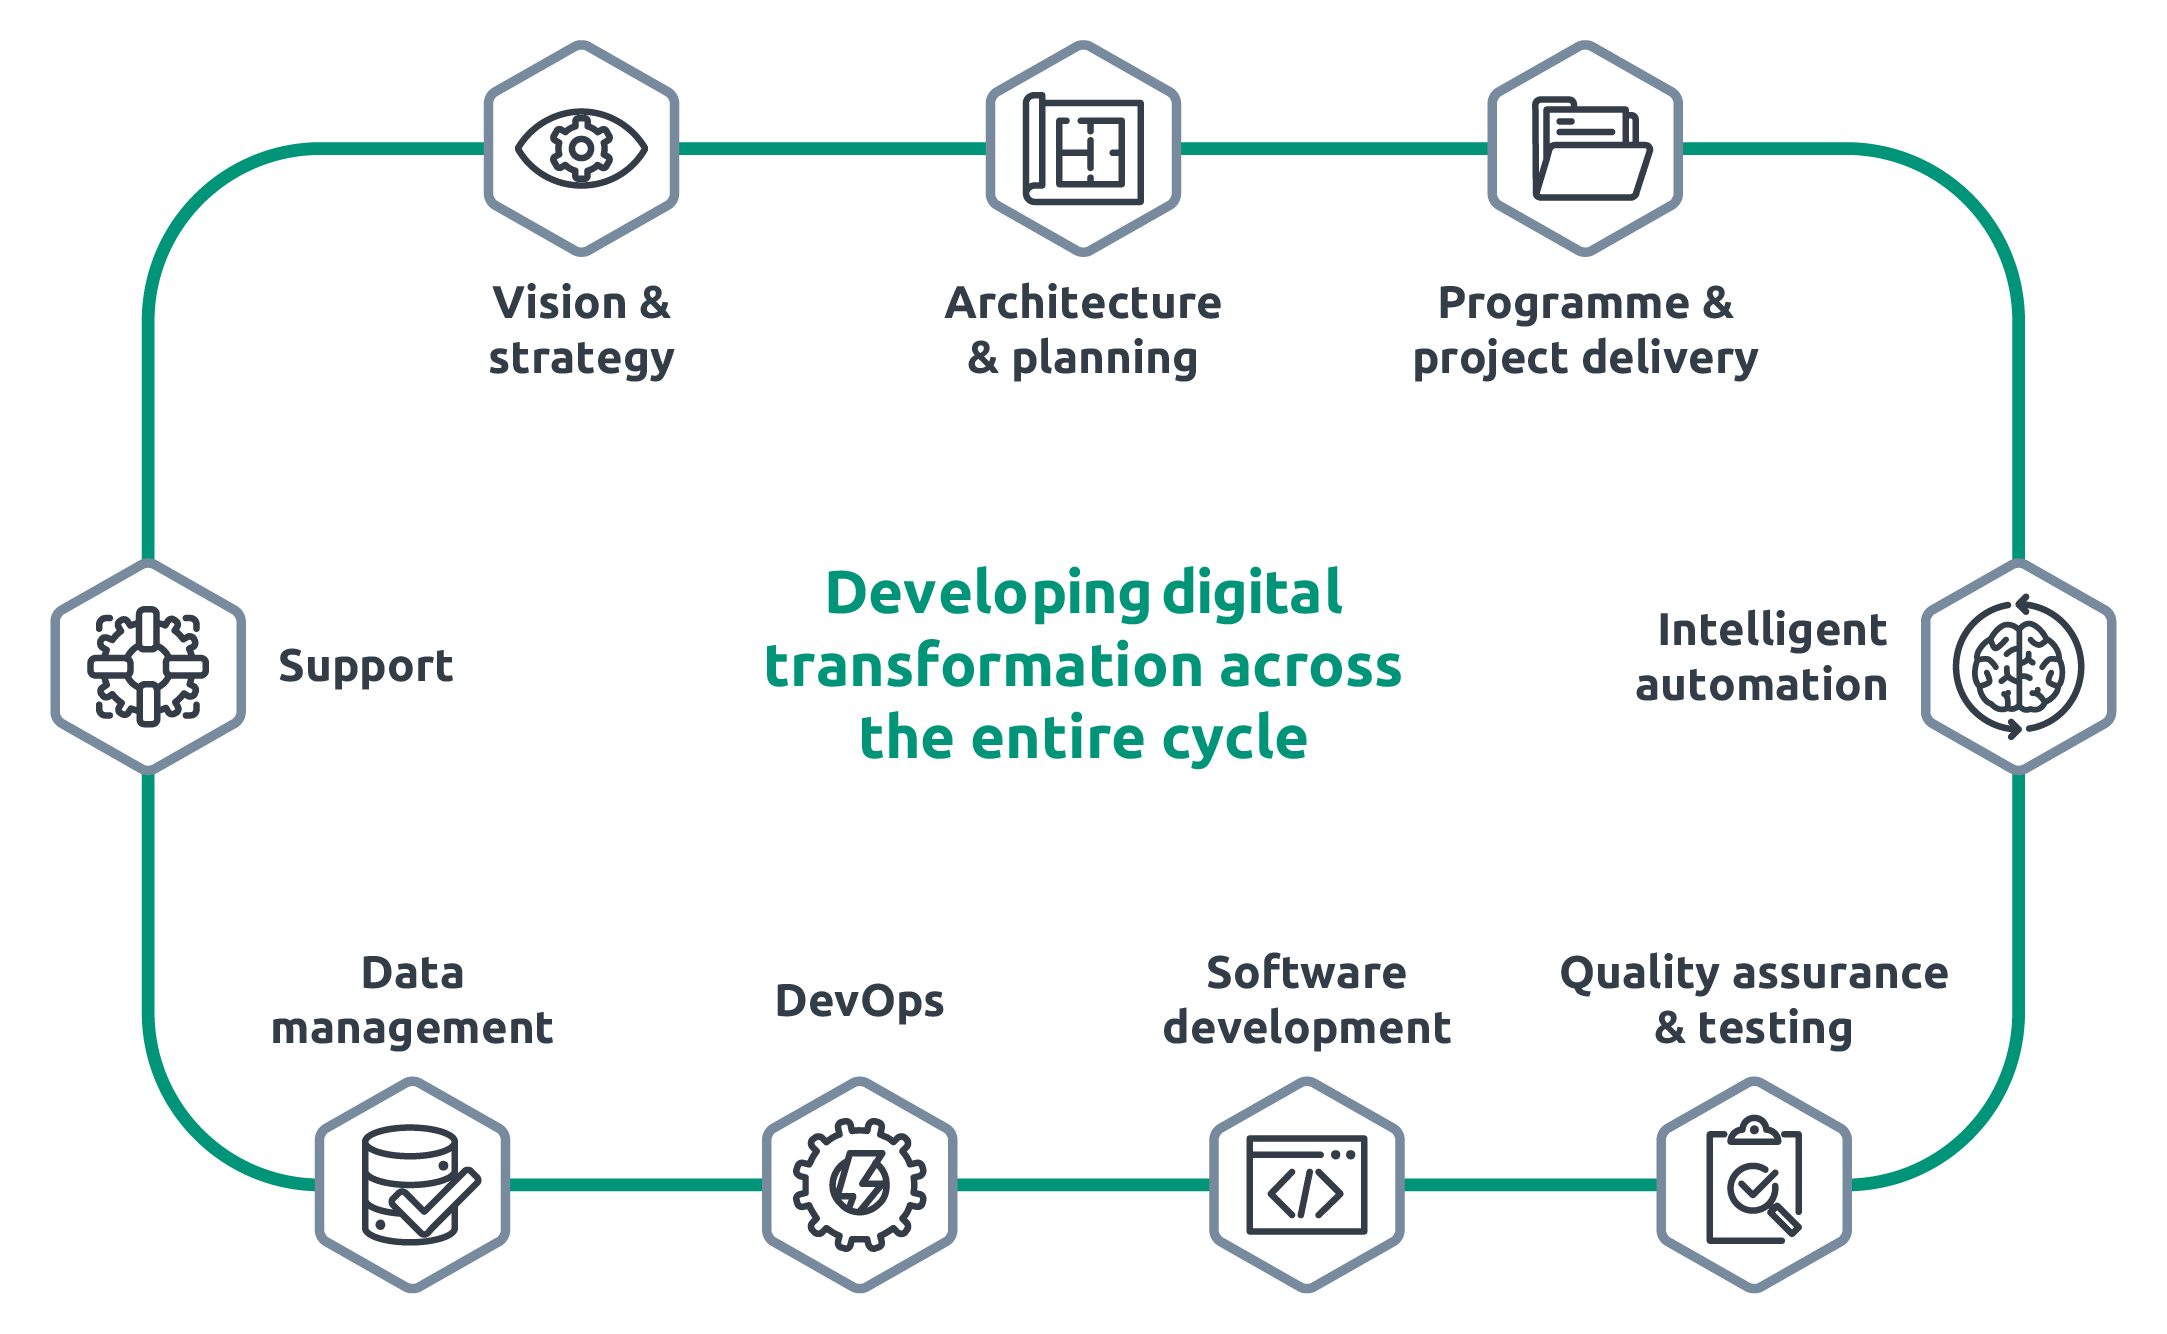 Triad's range of services support digital transformation across the entire cycle